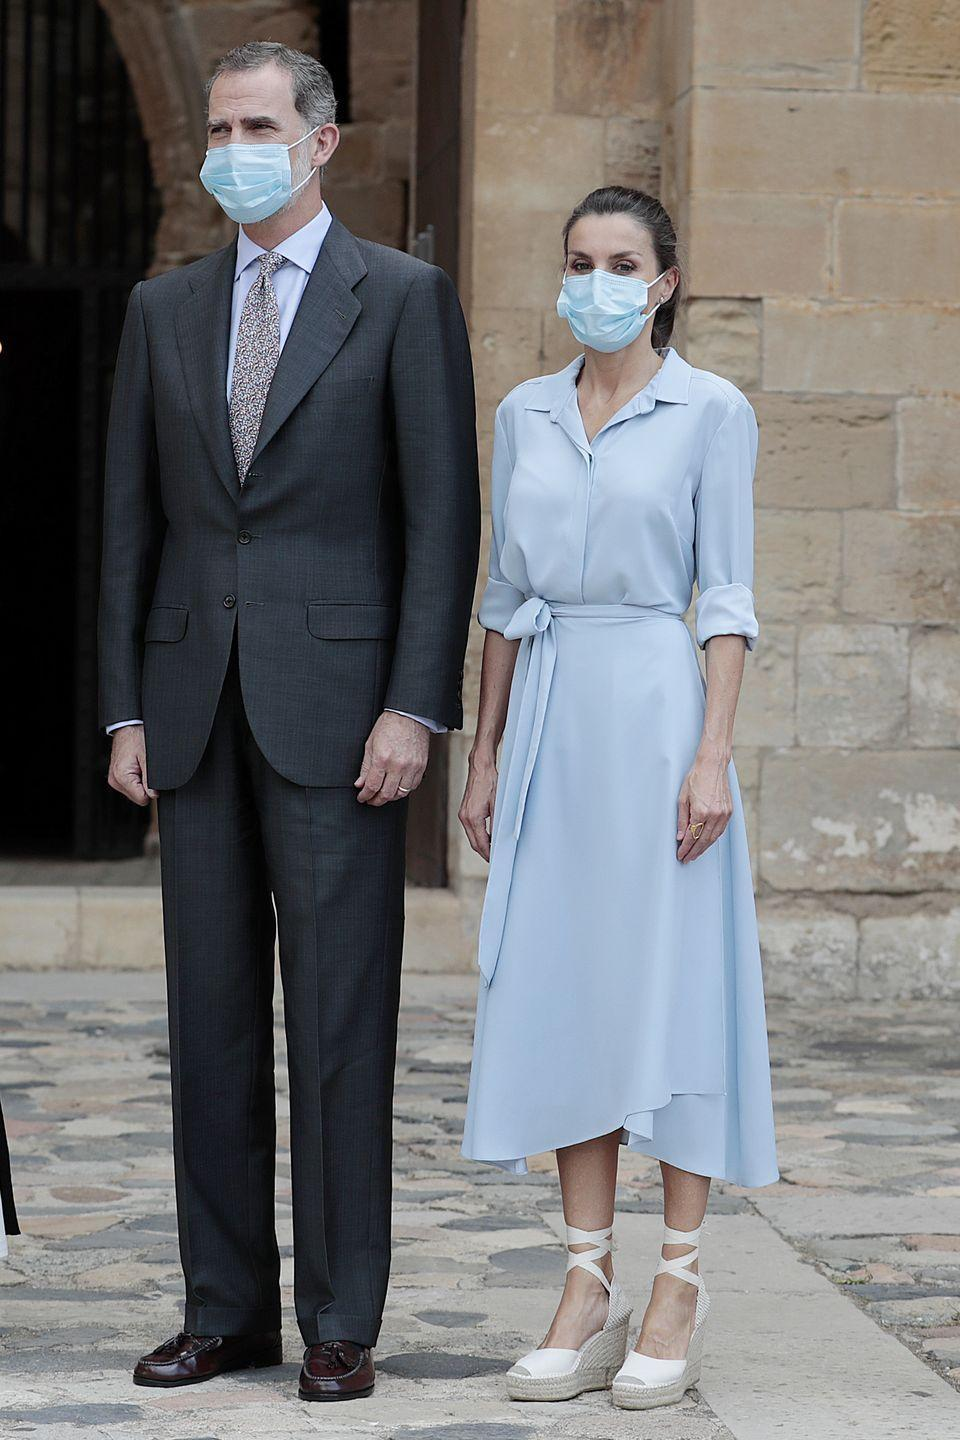 <p><strong>20 July </strong>Queen Letizia of Spain visited the Royal Monastery of Santa Maria de Poblet in Tarragona, Spain, wearing a pale blue shirt and matching wrap skirt. </p>